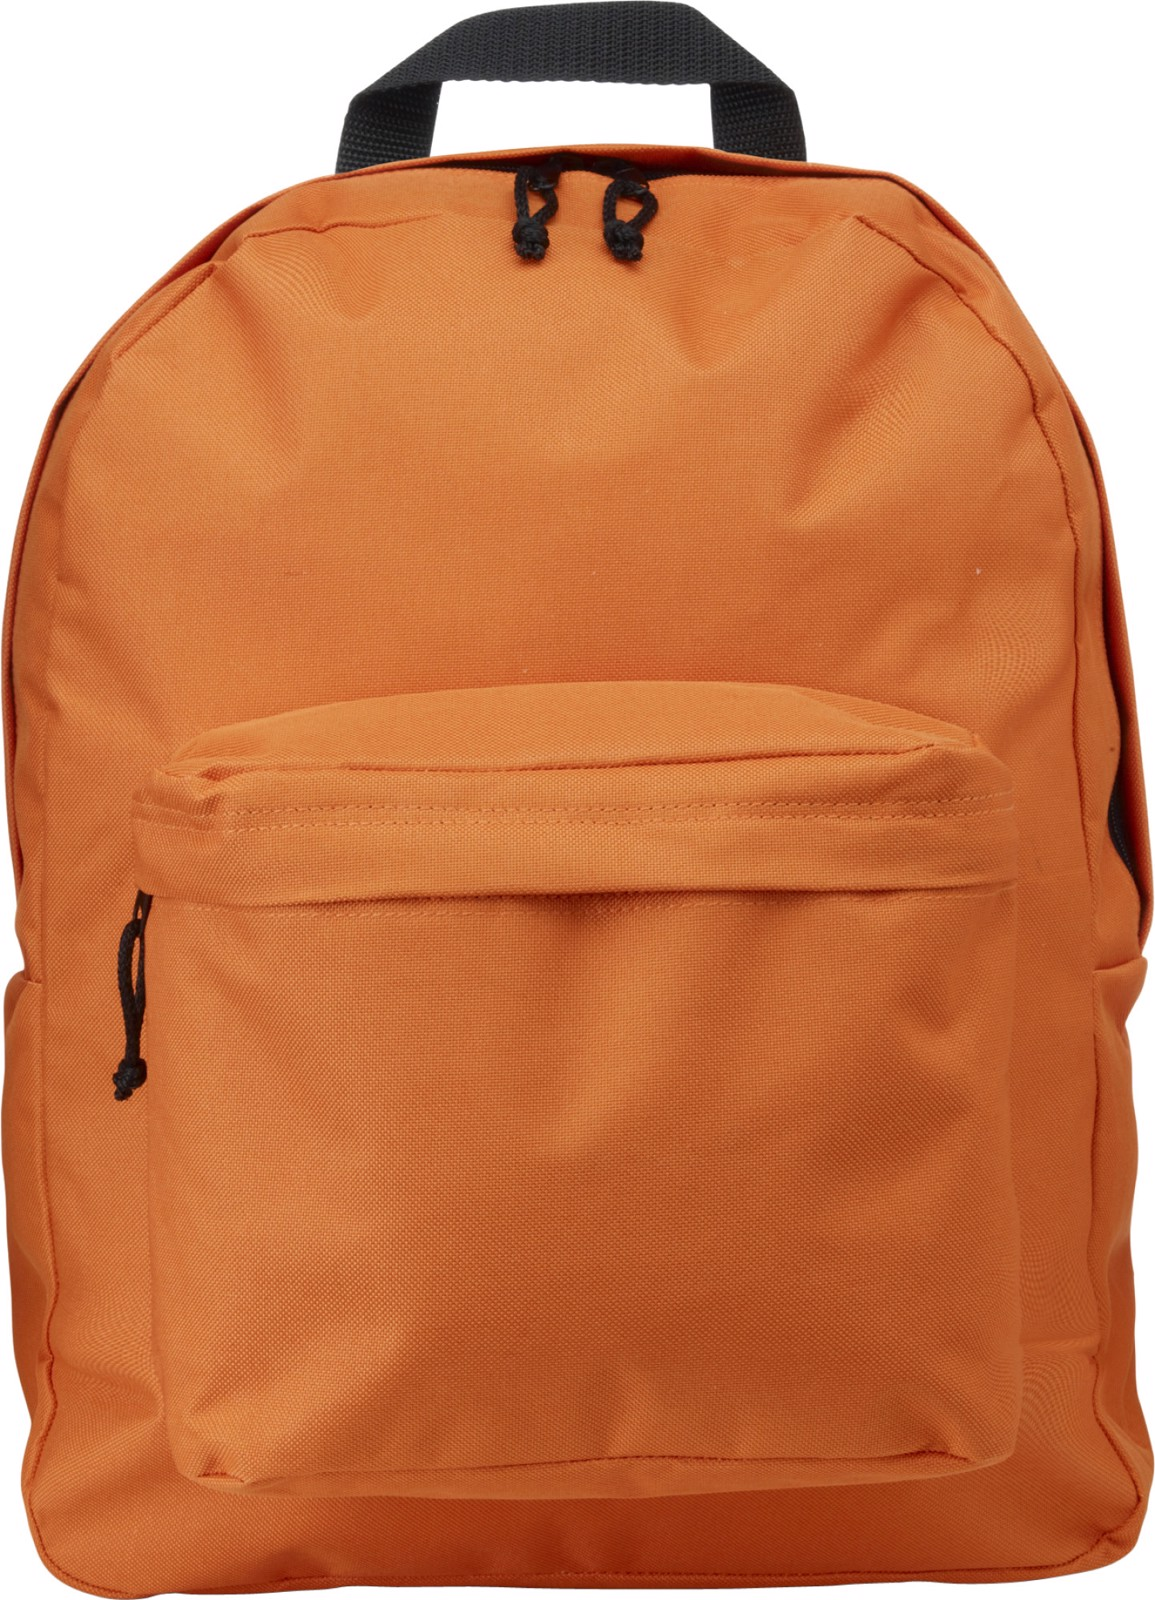 Polyester (600D) backpack - Orange